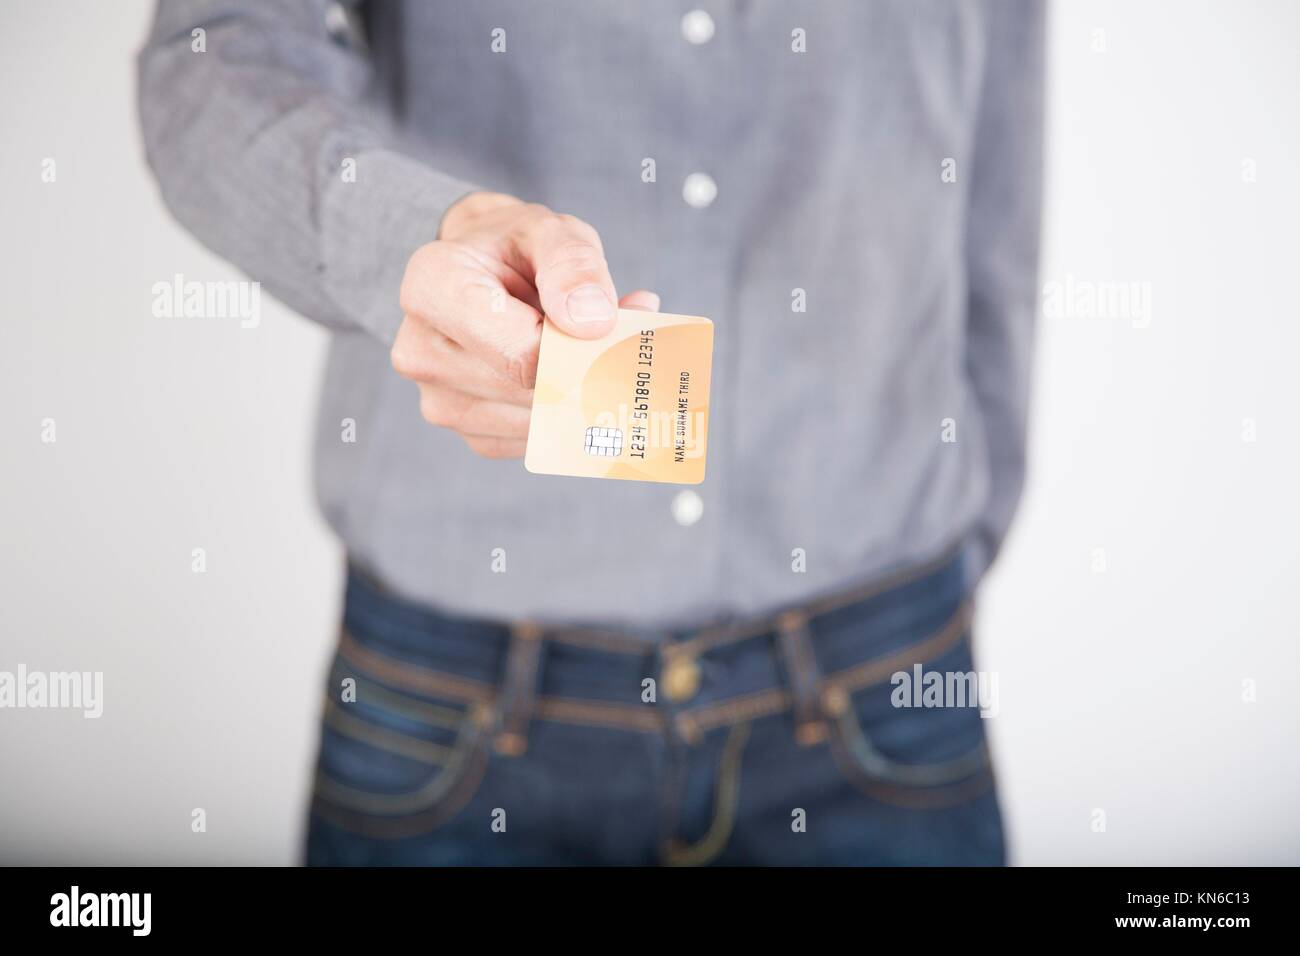 woman blue jeans trousers and grey shirt offering made up fiction credit card in her hands isolated over white background. Stock Photo